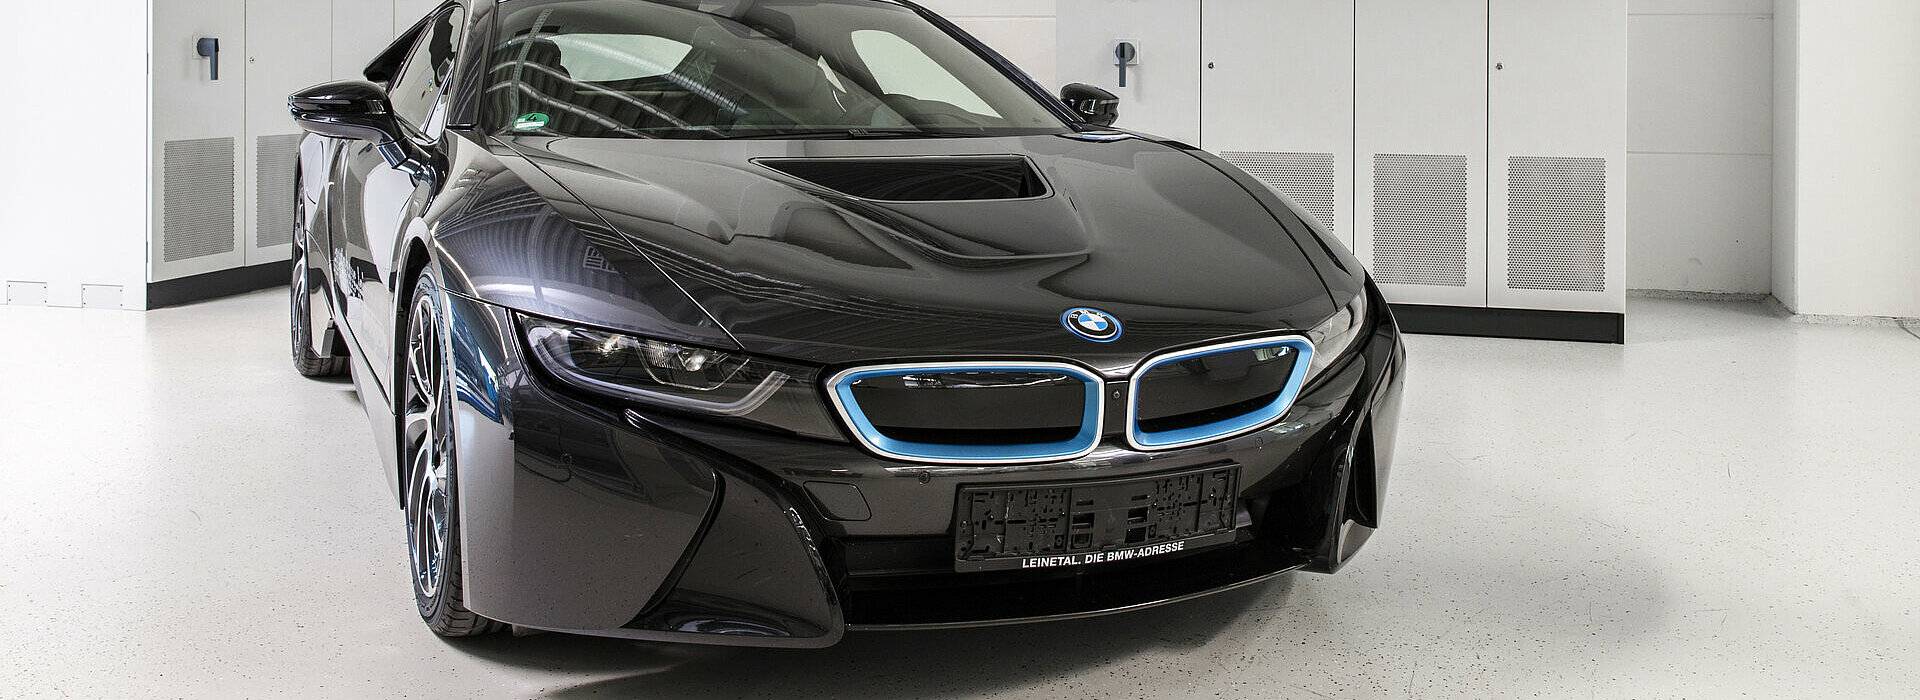 Close-up of a BMW i8 in the Production Hall